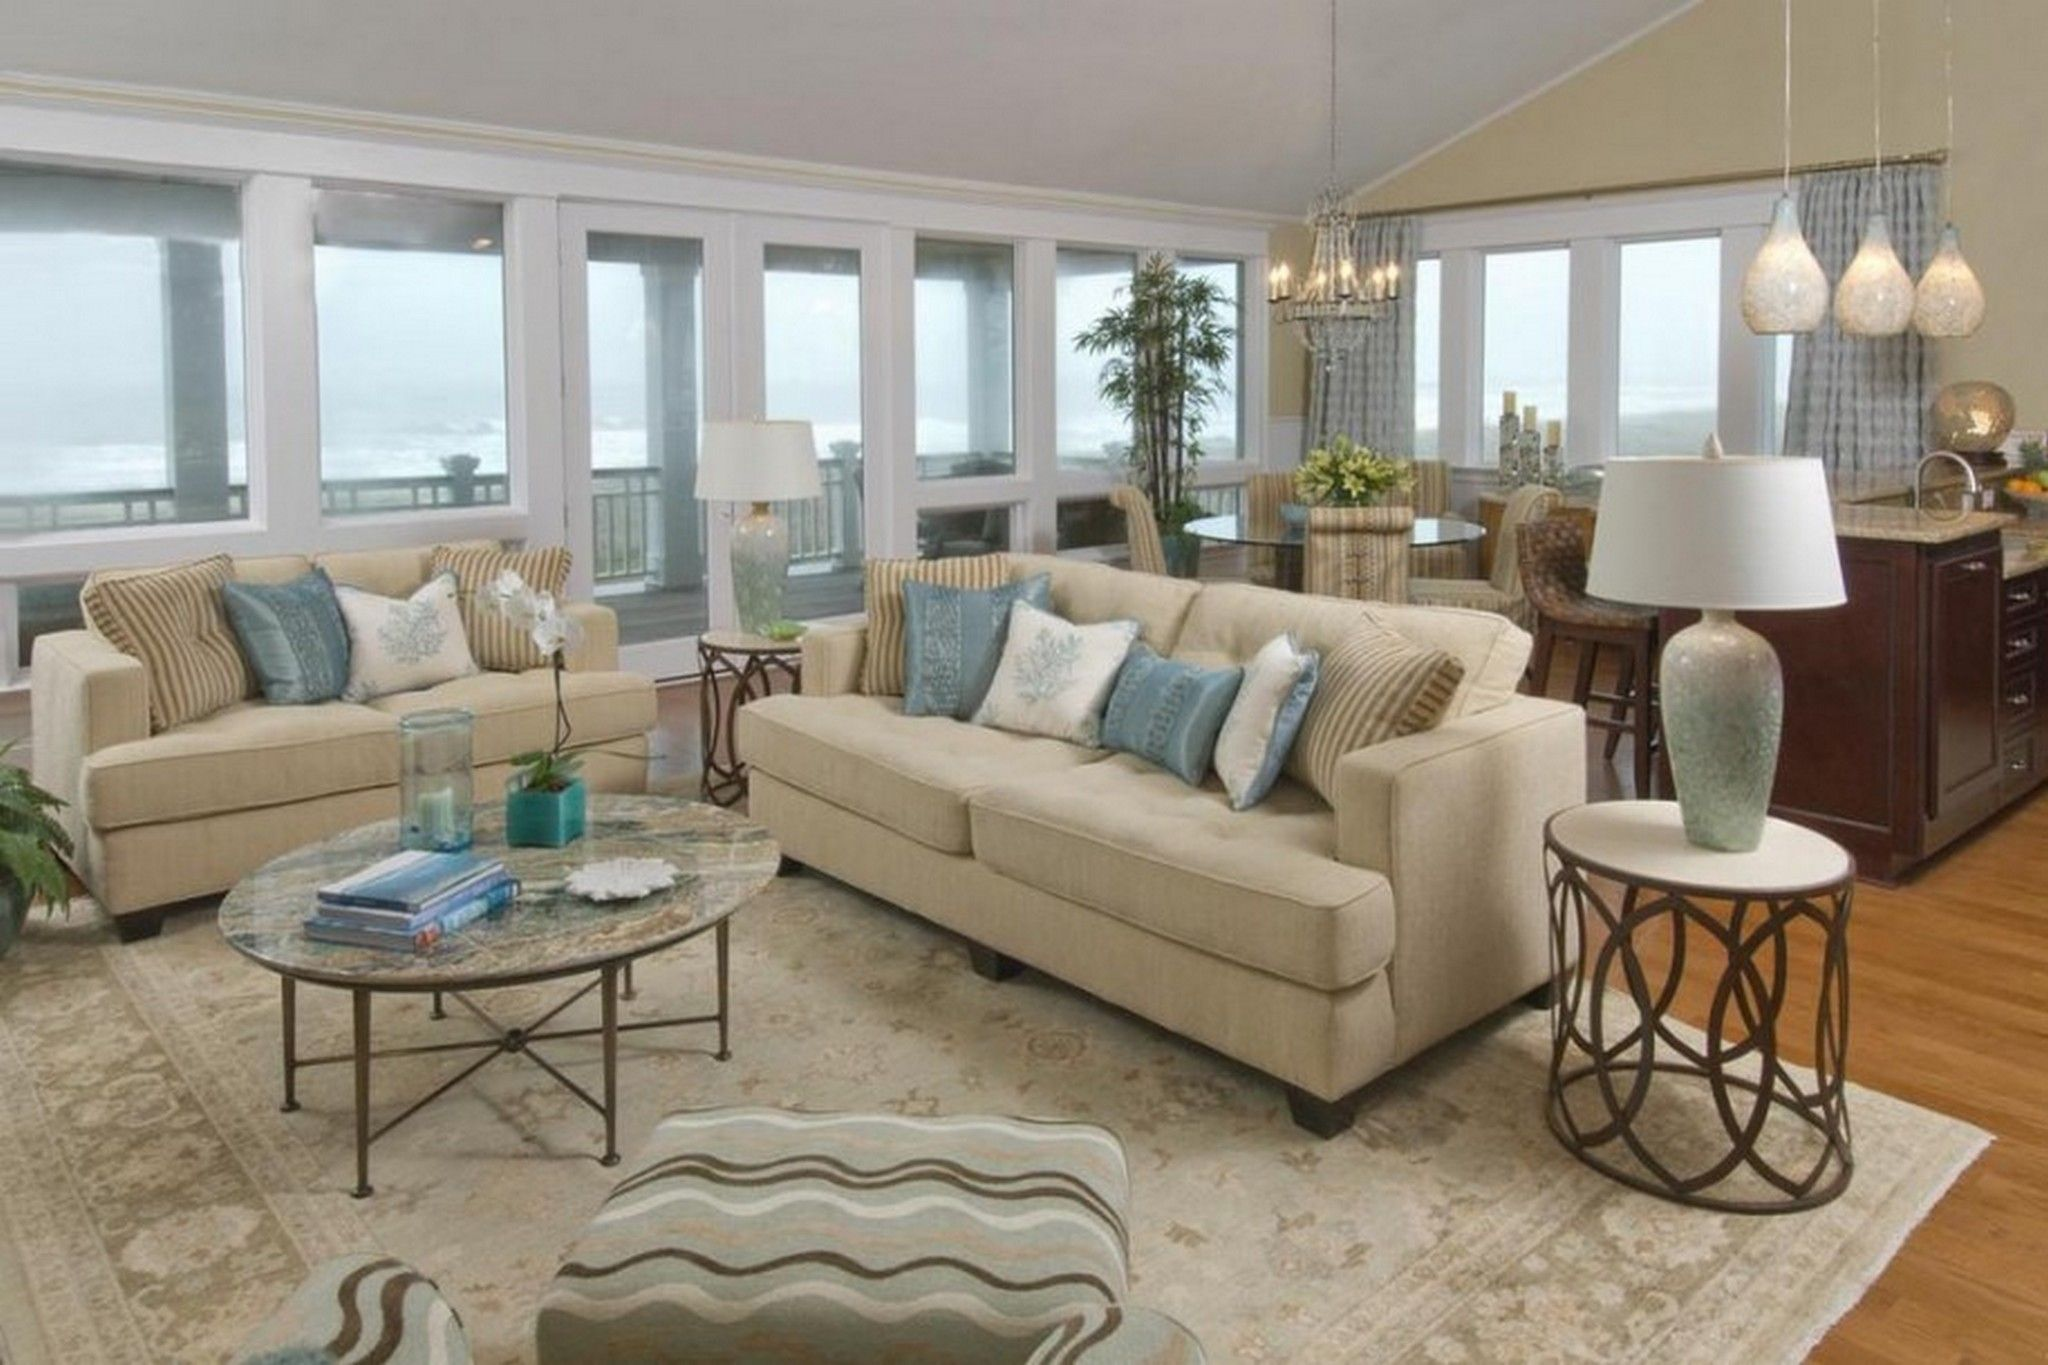 Beach Themed Living Room Design Glamorous Beach Decor For The Living Room  Beach House Interiors Review